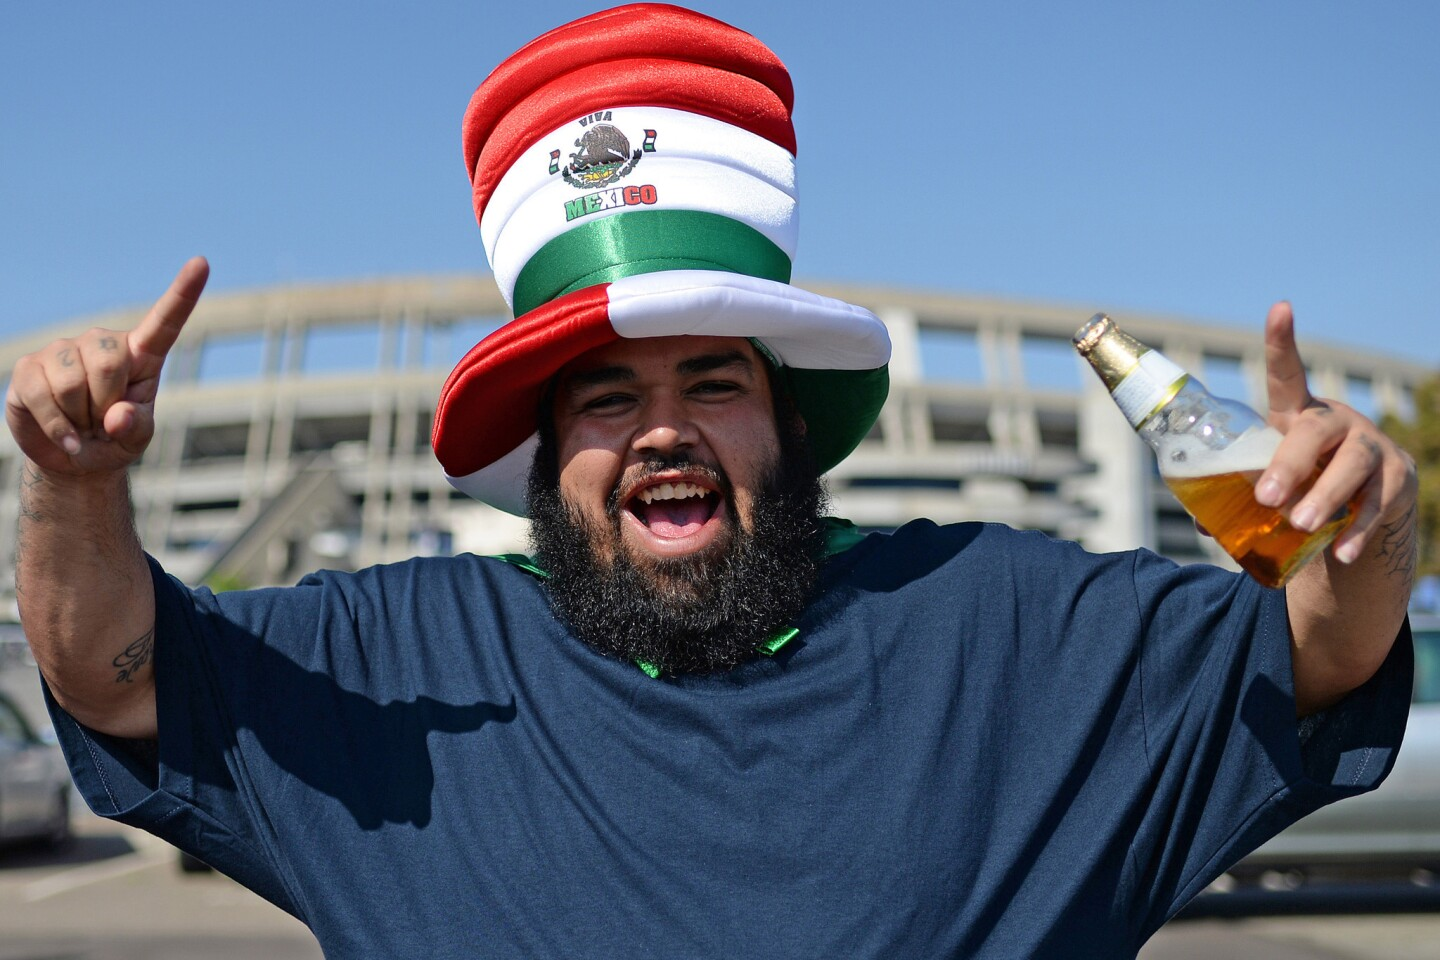 Jun 1, 2016; San Diego, CA, USA; A Mexico fan cheers before the game against Chile at Qualcomm Stadium. Mandatory Credit: Jake Roth-USA TODAY Sports ** Usable by SD ONLY **